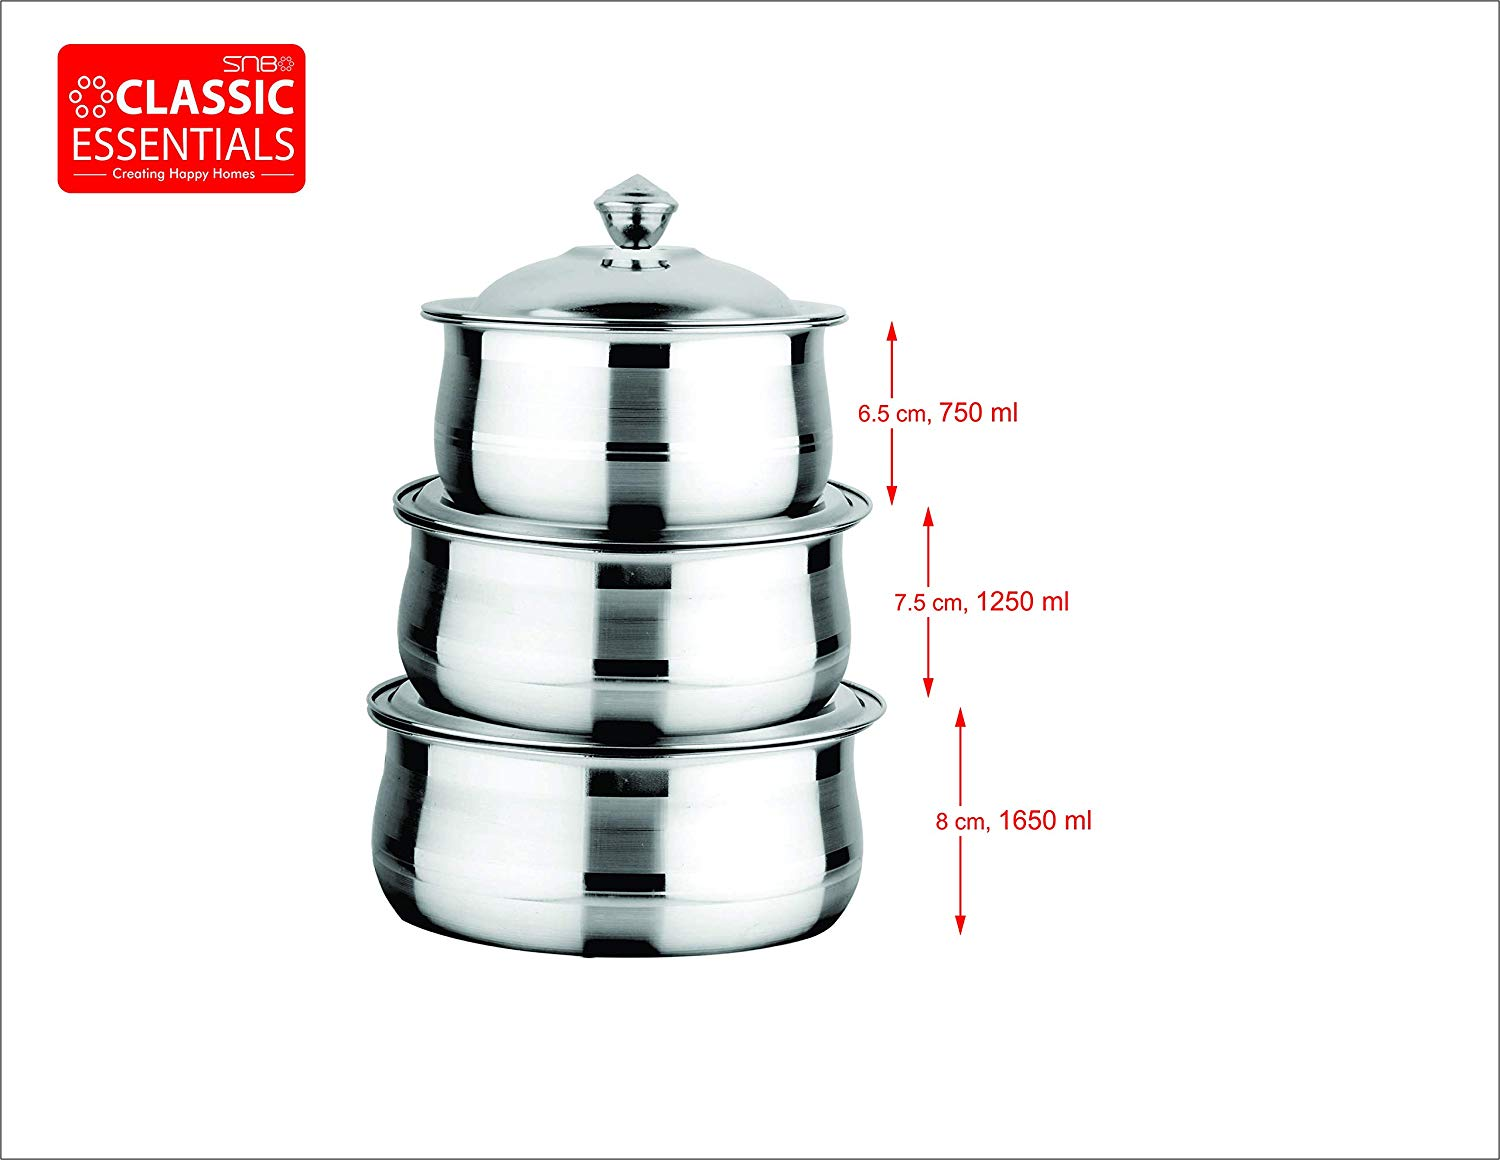 Classic Essentials High Grade Stainless Steel Dinner Set of 83 Pcs, Silver